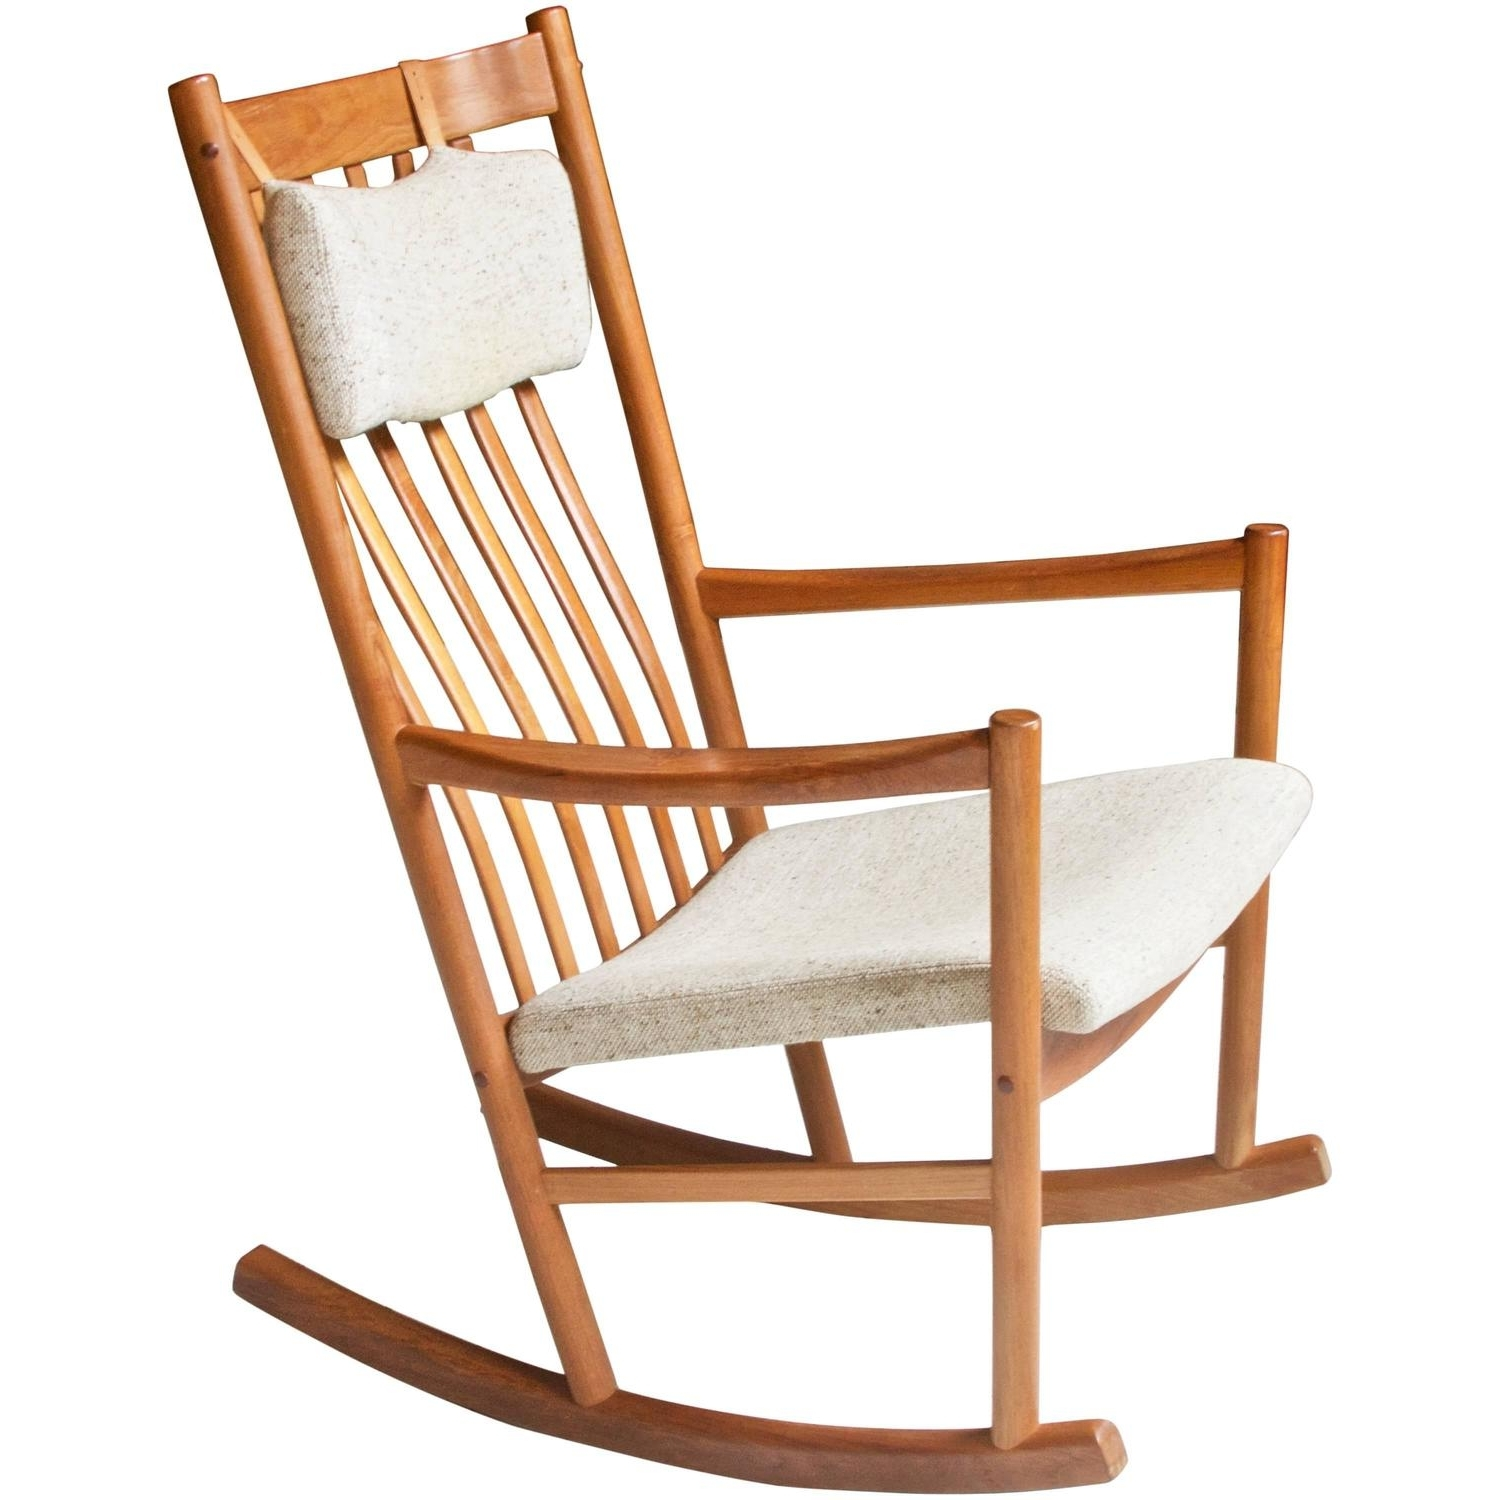 Preferred Pair Of Vintage Rope Seat Rocking Chairs For Sale At 1stdibs With Regard To Retro Rocking Chairs (View 6 of 20)